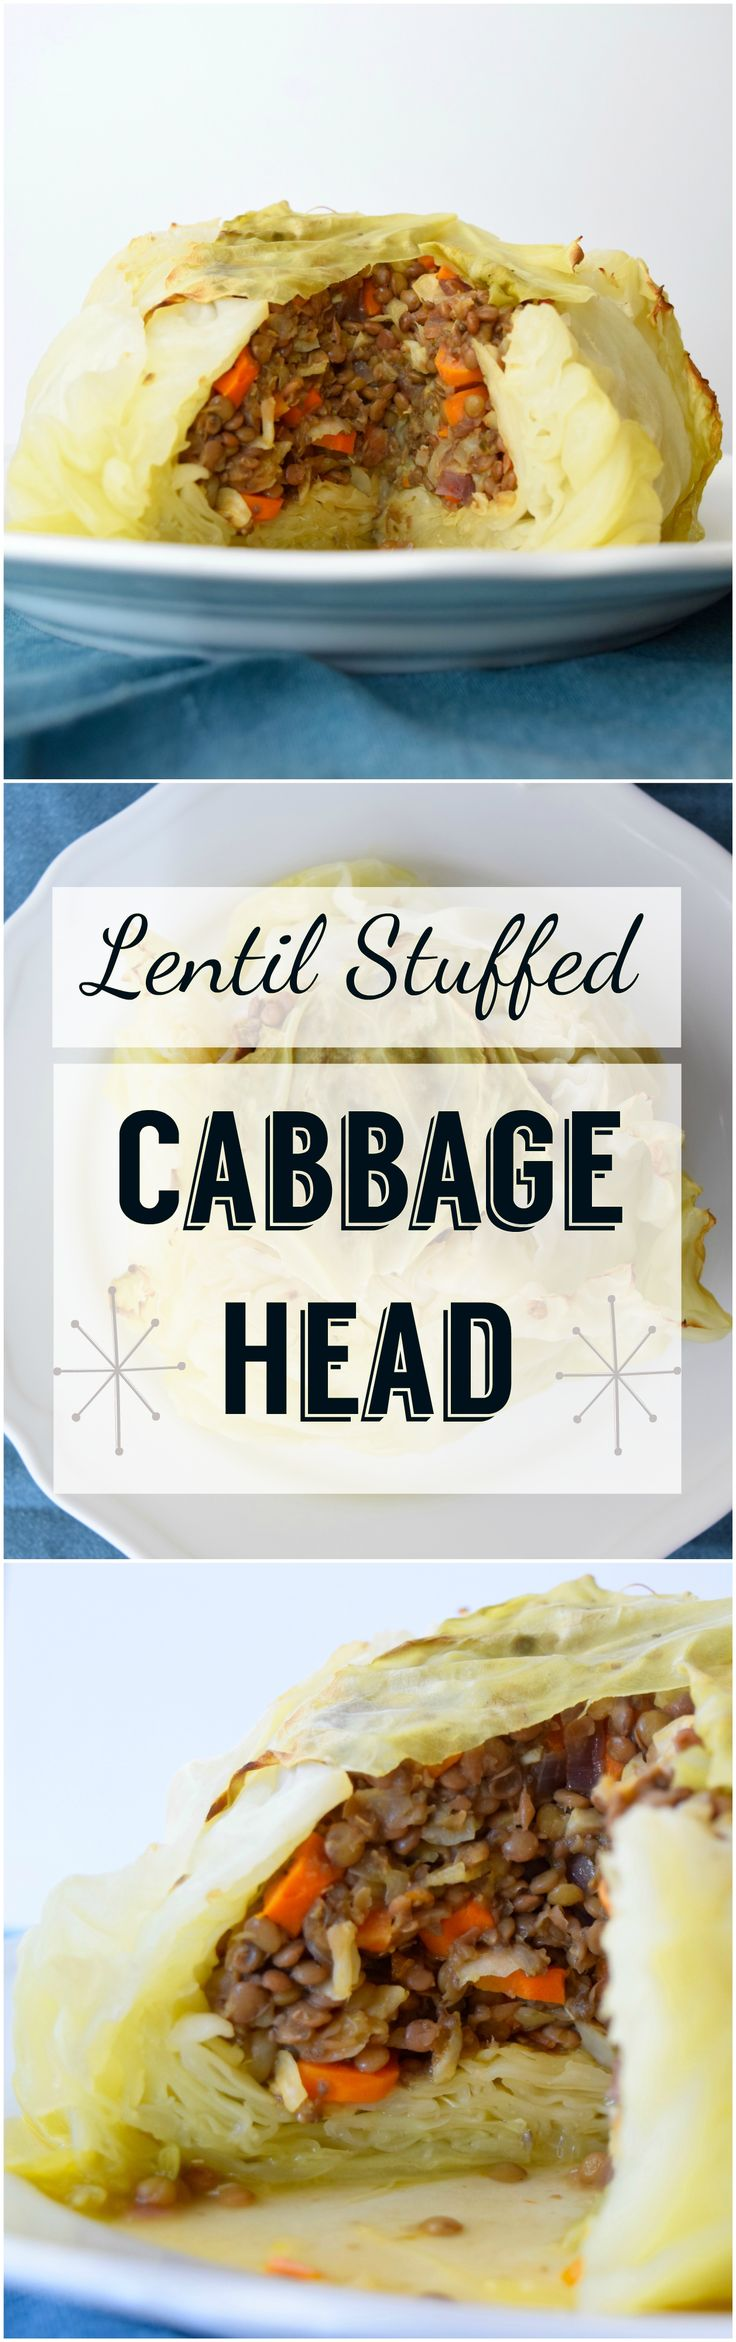 A vegan spin on an Eastern European recipe. Tender and delicious cabbage baked with a flavorful lentil stuffing.